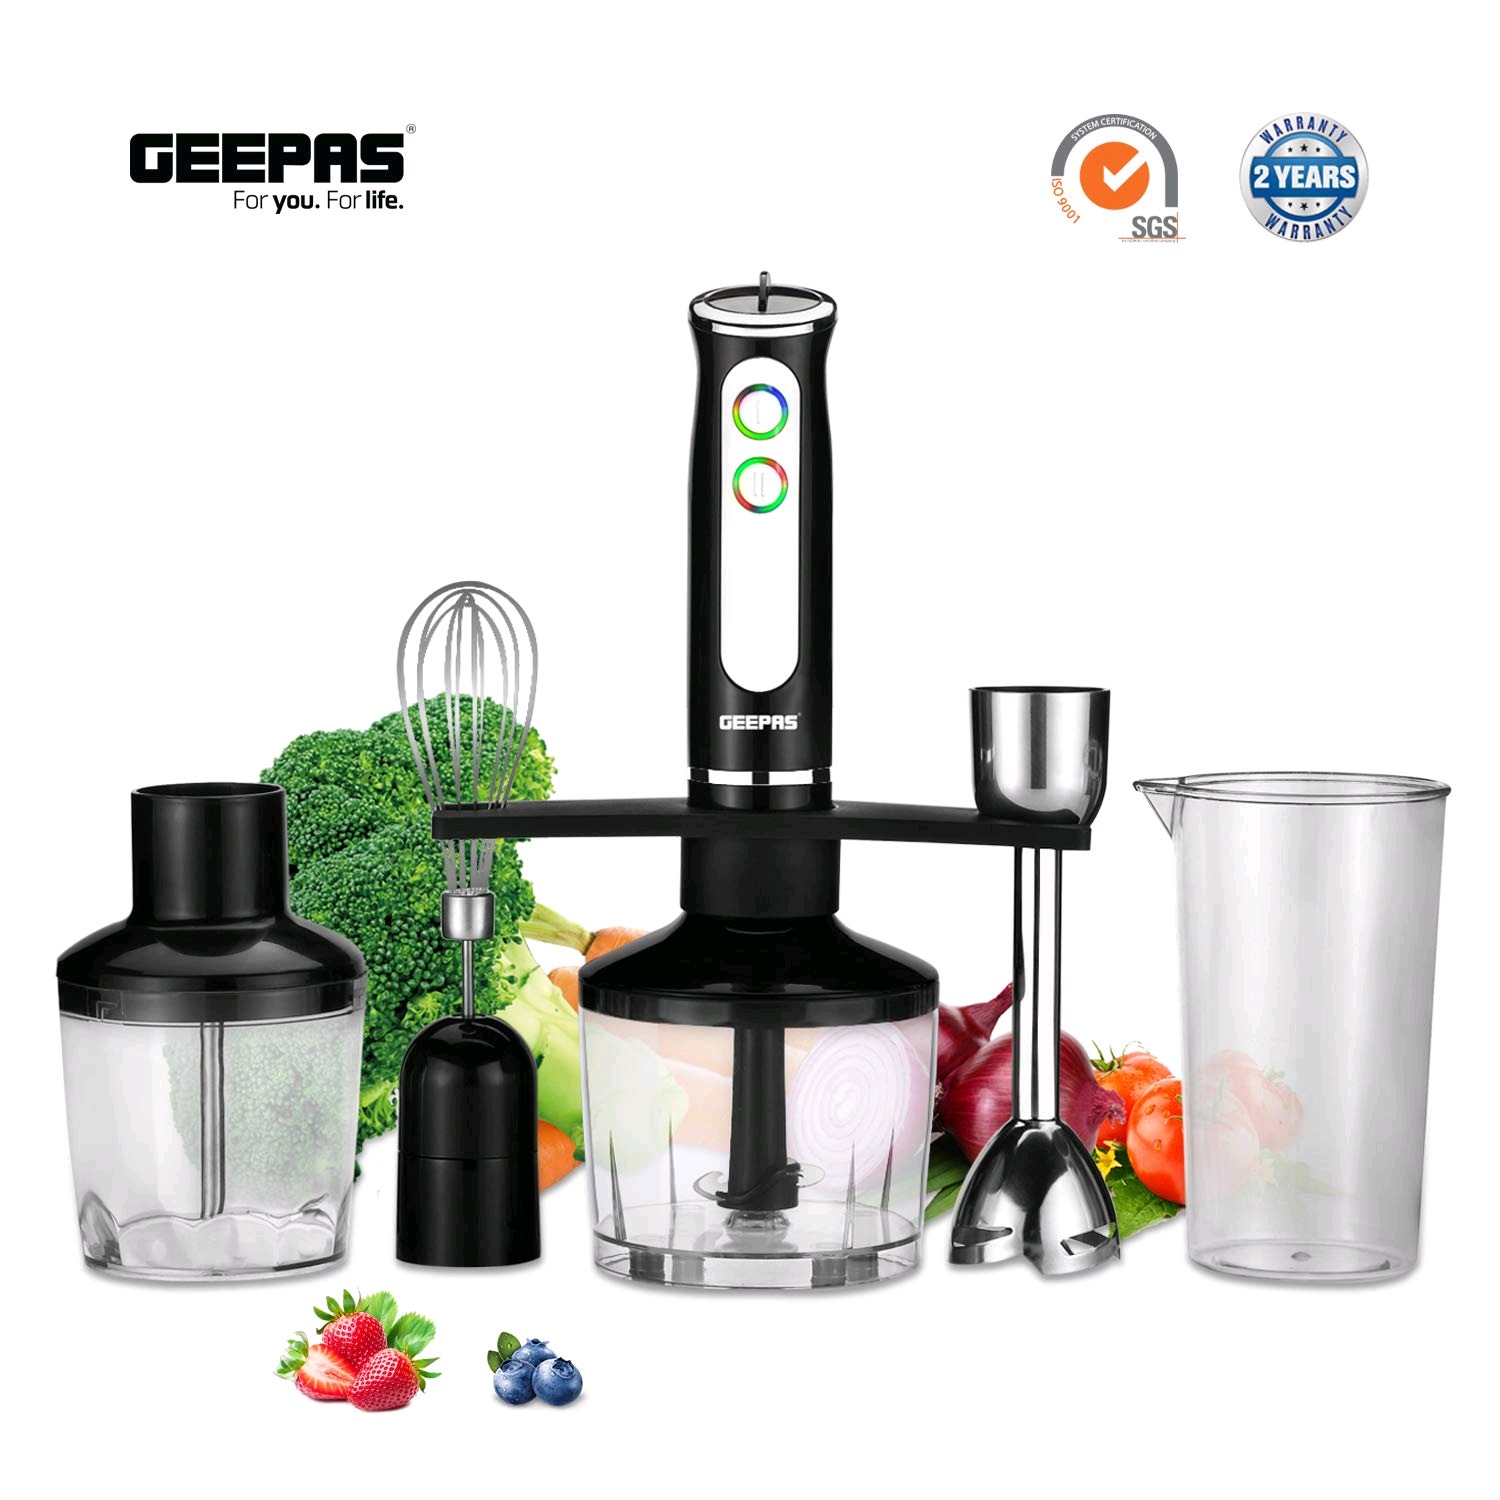 Geepas GHB43016UK 600W 5-in-1 Hand Blender � 8 Variable Speeds, Indicator Lights, Stainless Steel Blade for Blending The Perfect Smoothies and Grinding Coffee